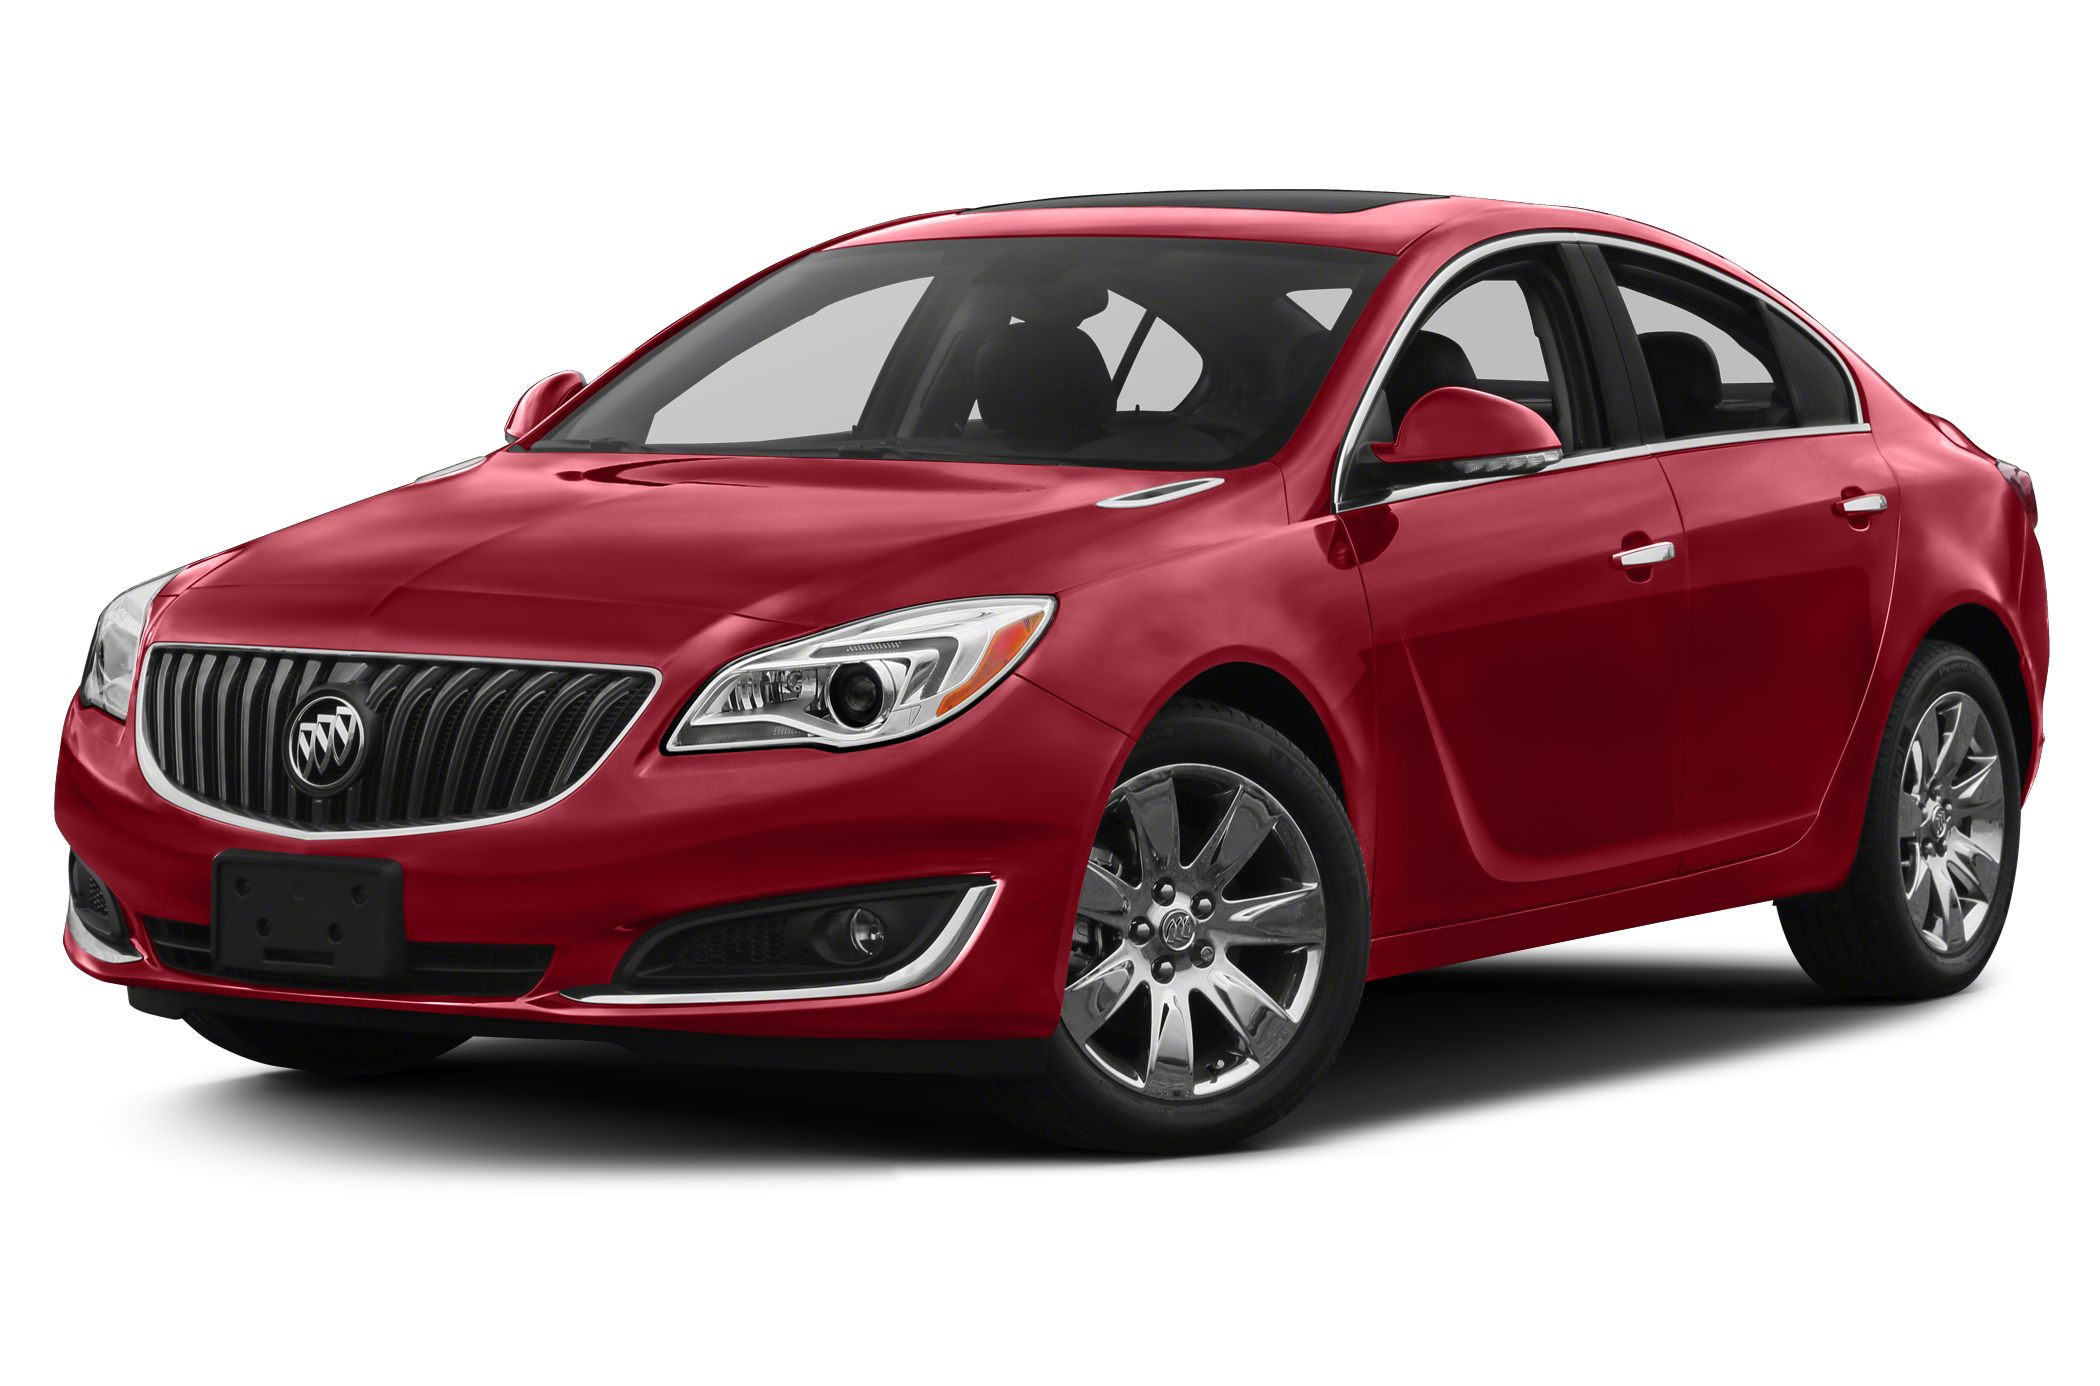 2017 Buick Regal 1SV 4dr Front-wheel Drive Sedan